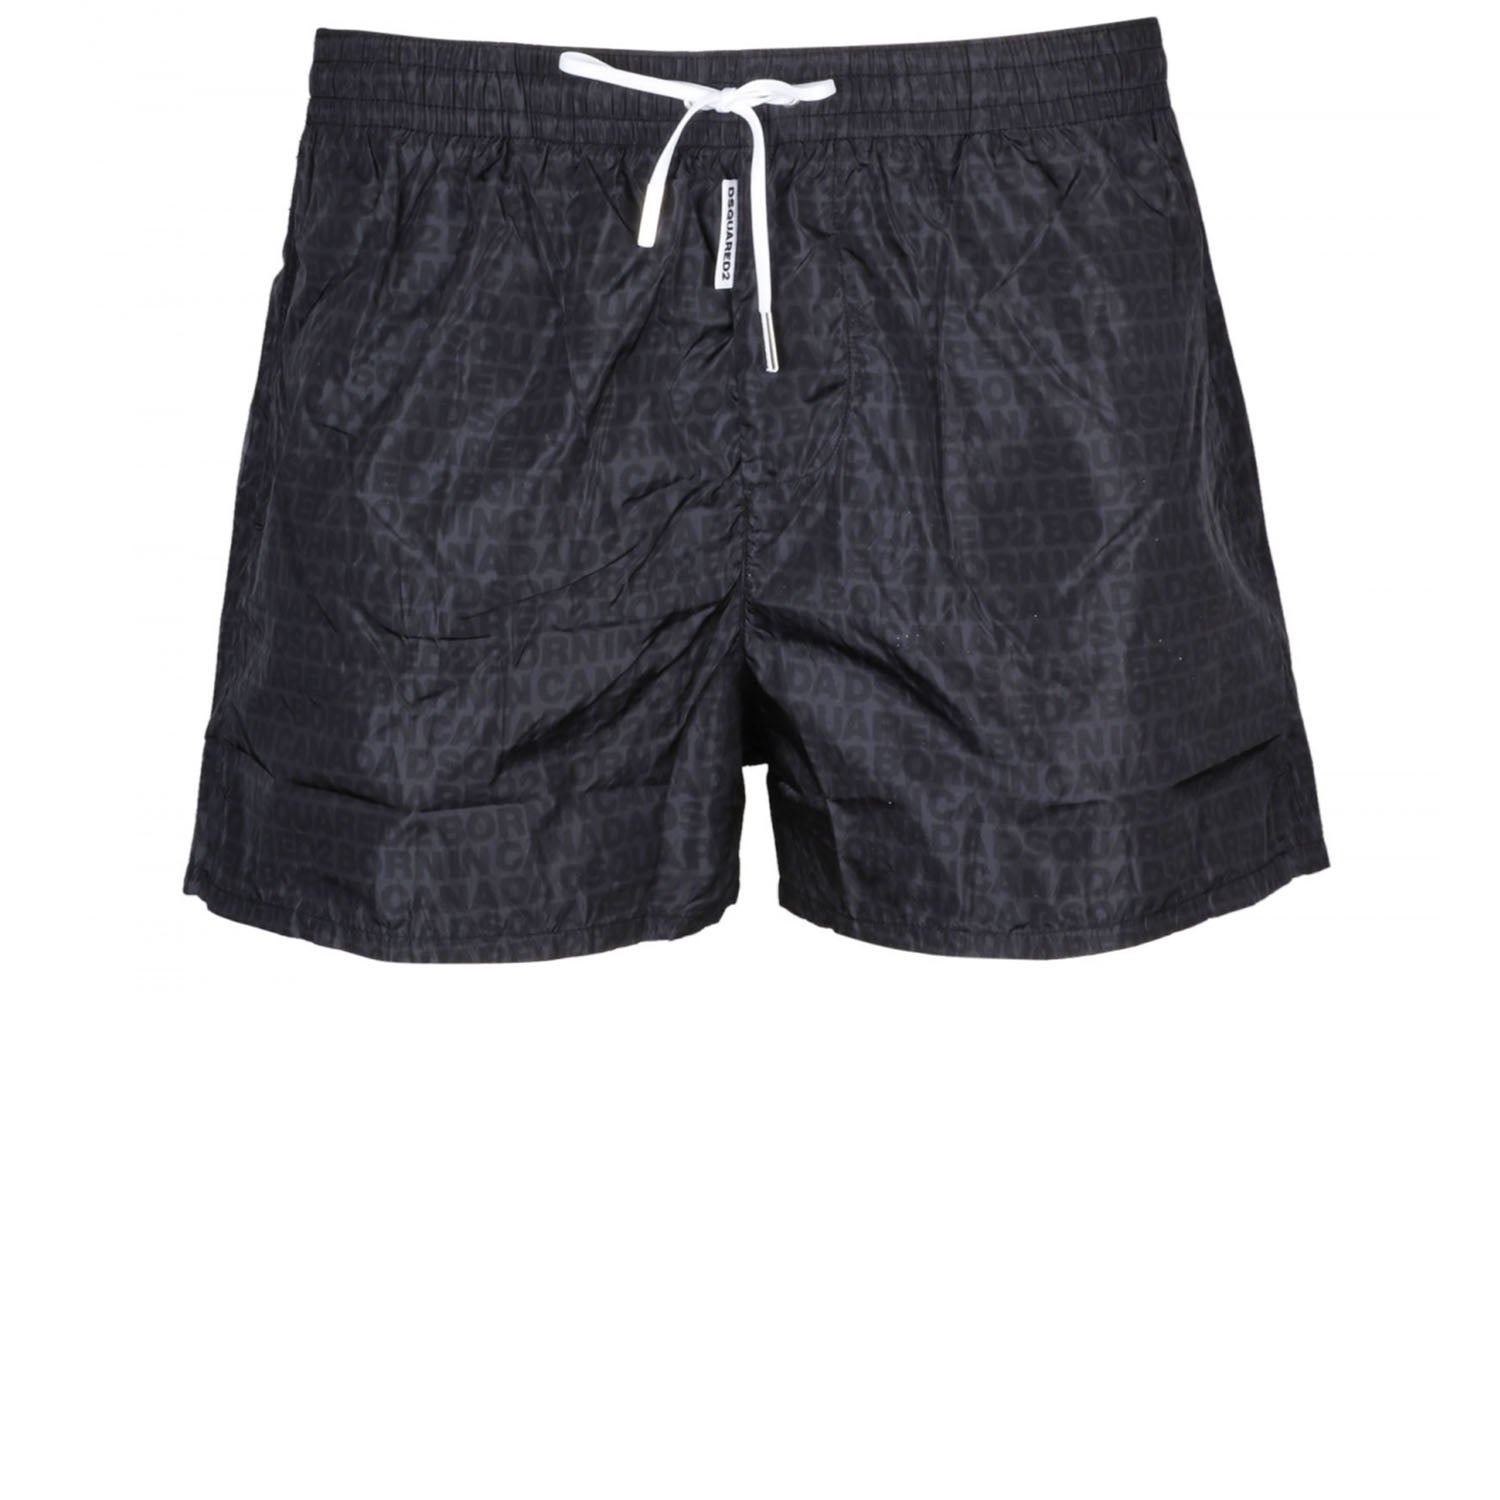 DSquared2 All Over Logo Swim Shorts